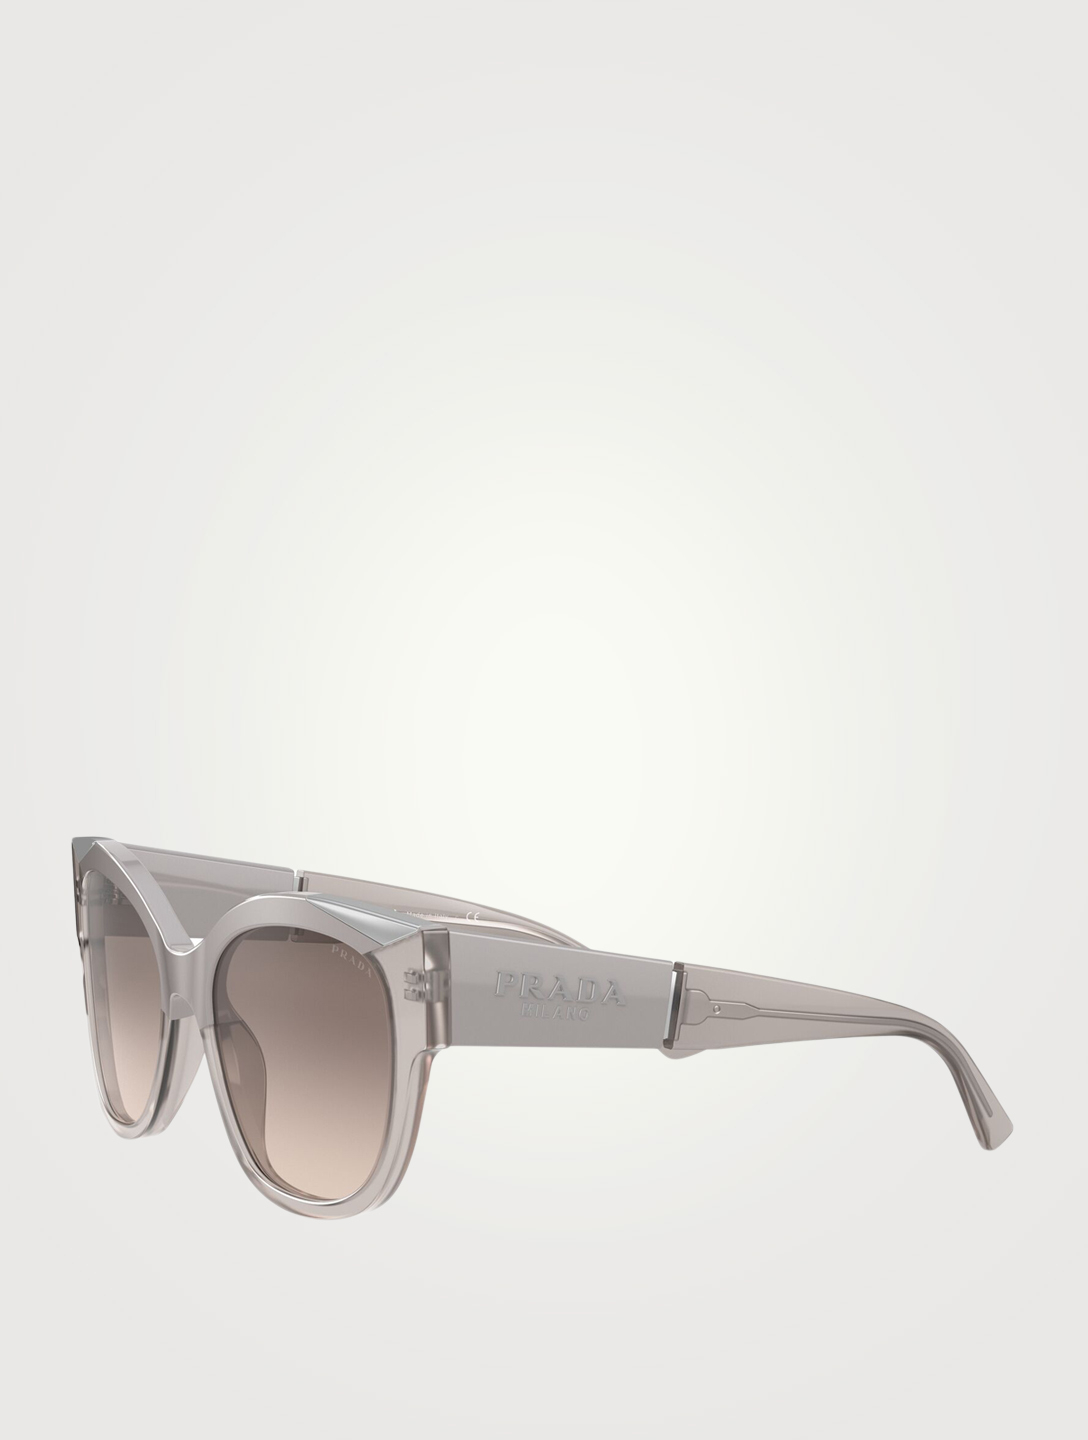 PRADA Monochrome Pillow Sunglasses Women's Grey